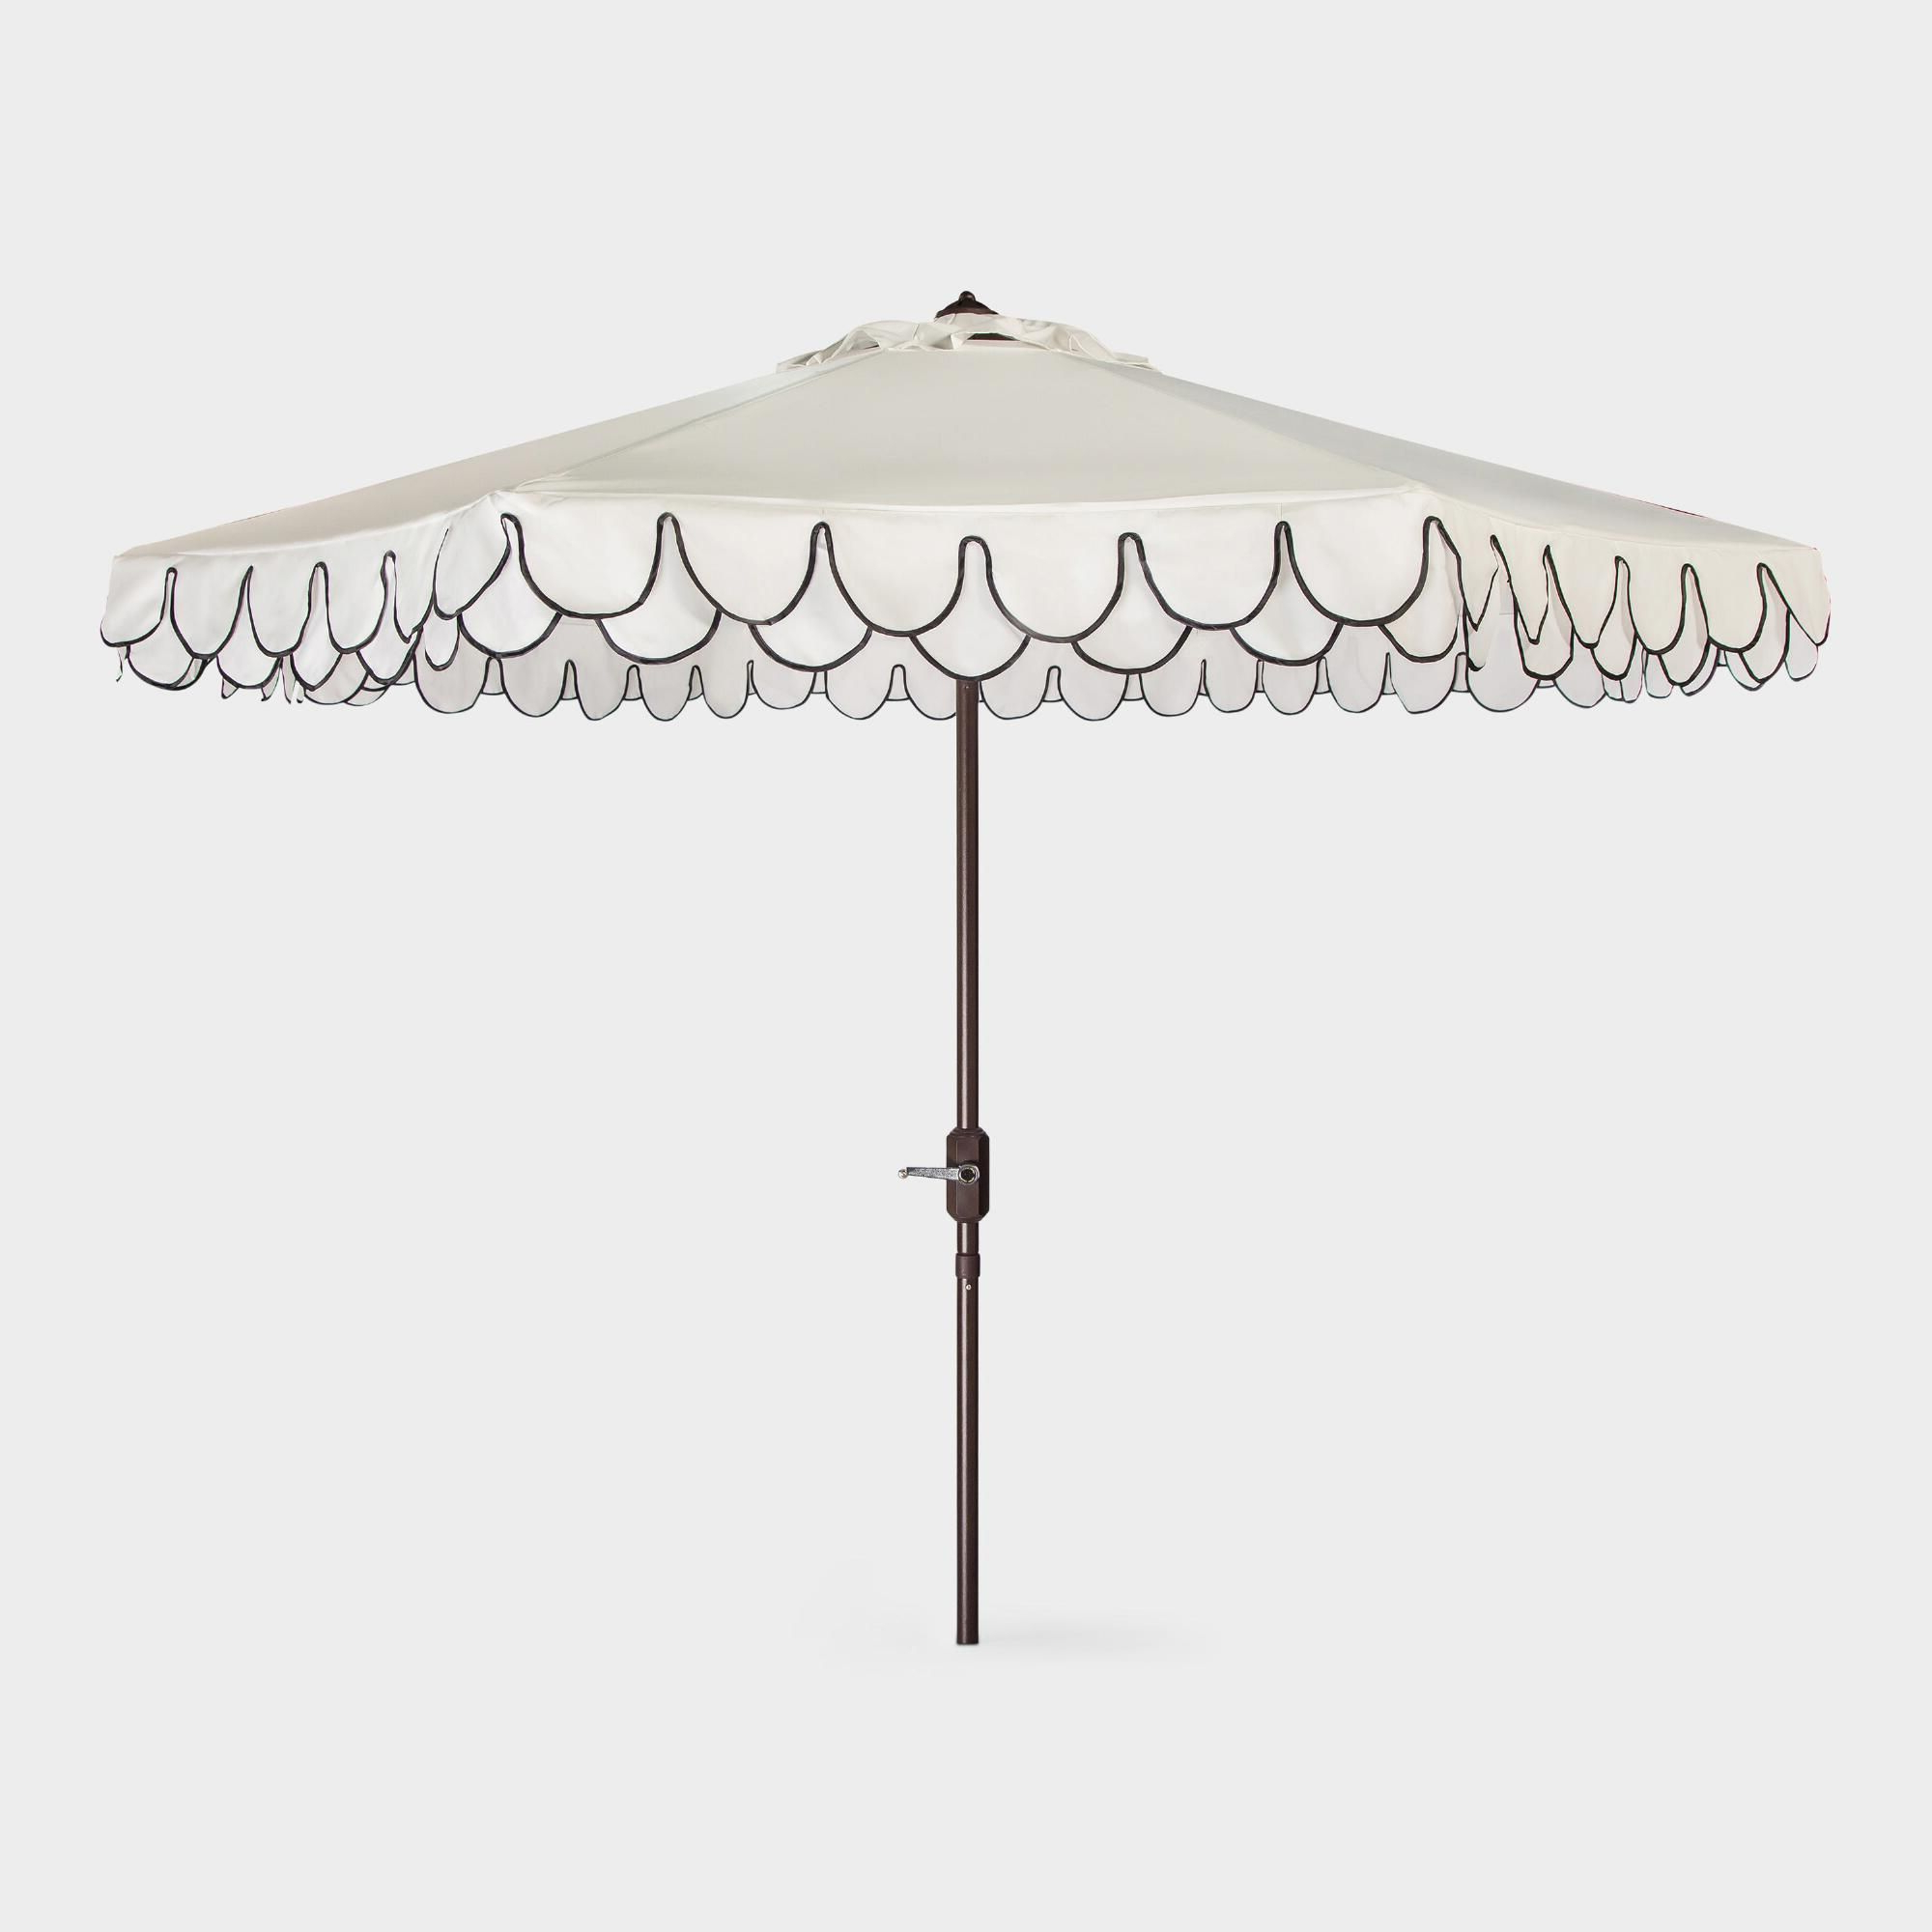 Trendy Lizarraga Market Umbrellas With White And Black Double Scallop 9 Ft Tilting Outdoor Patio Umbrella (View 18 of 20)